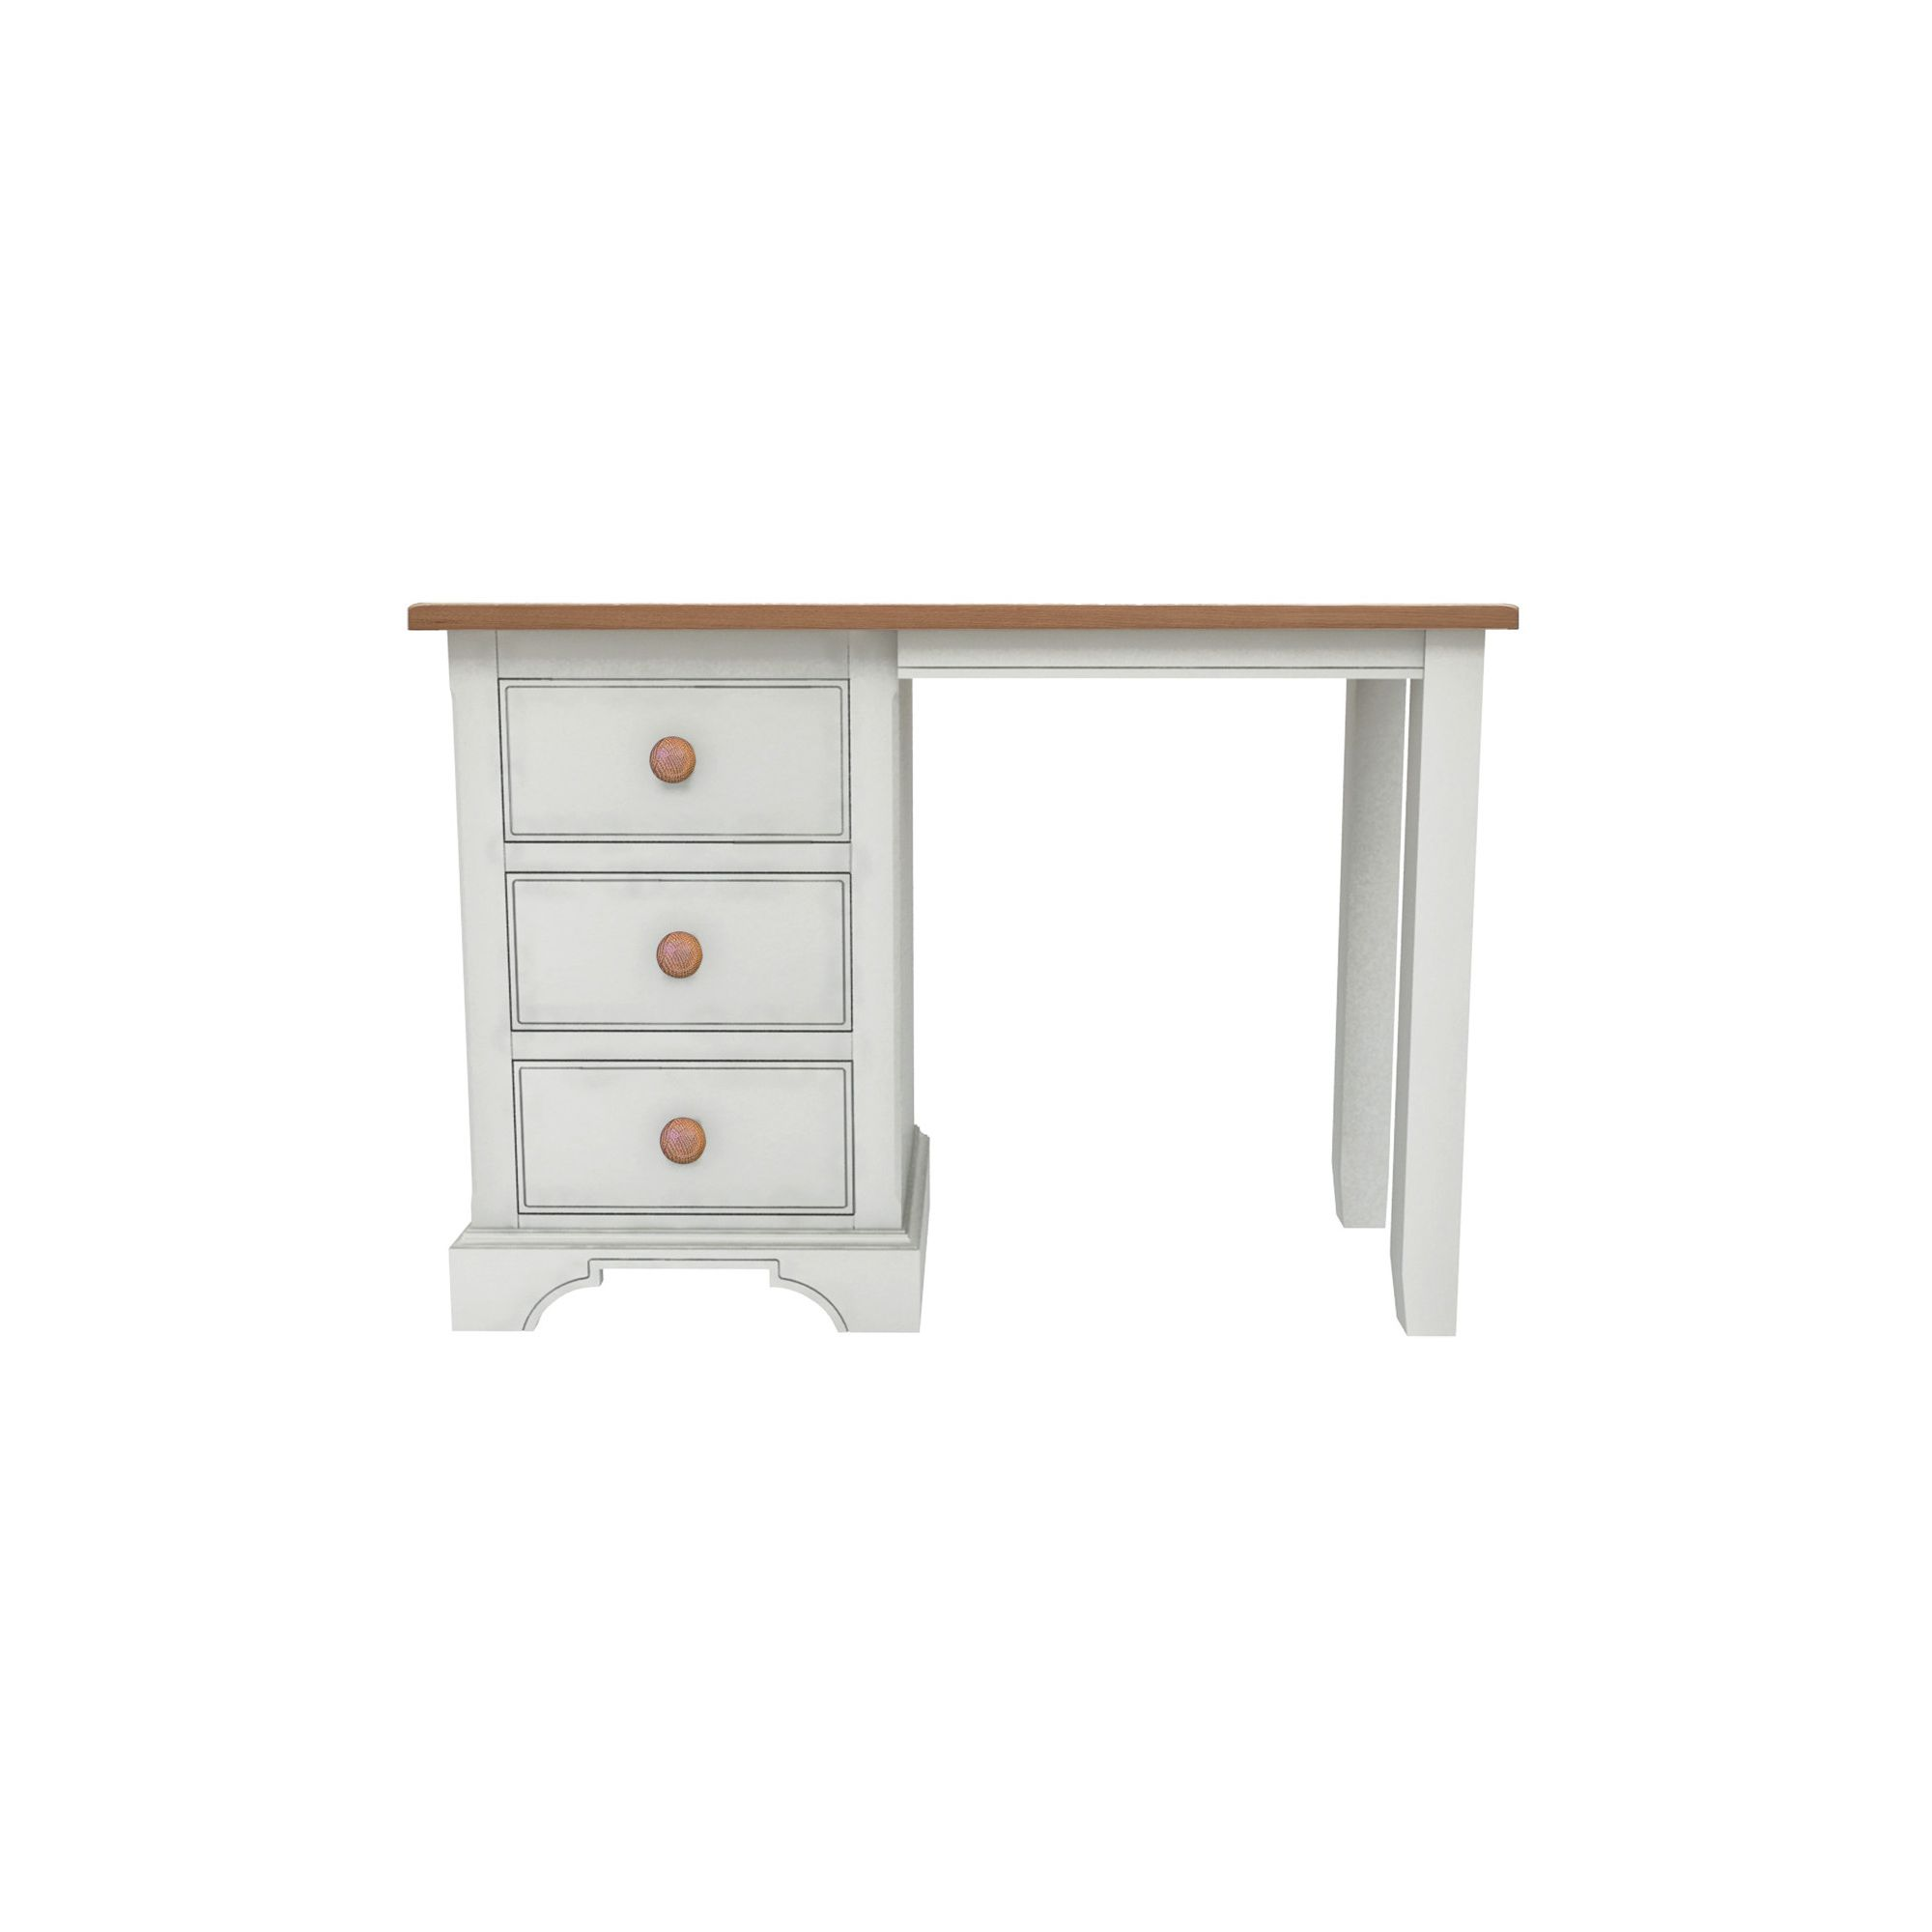 Thorndon Highgrove Bedroom Dressing Table at Tesco Direct